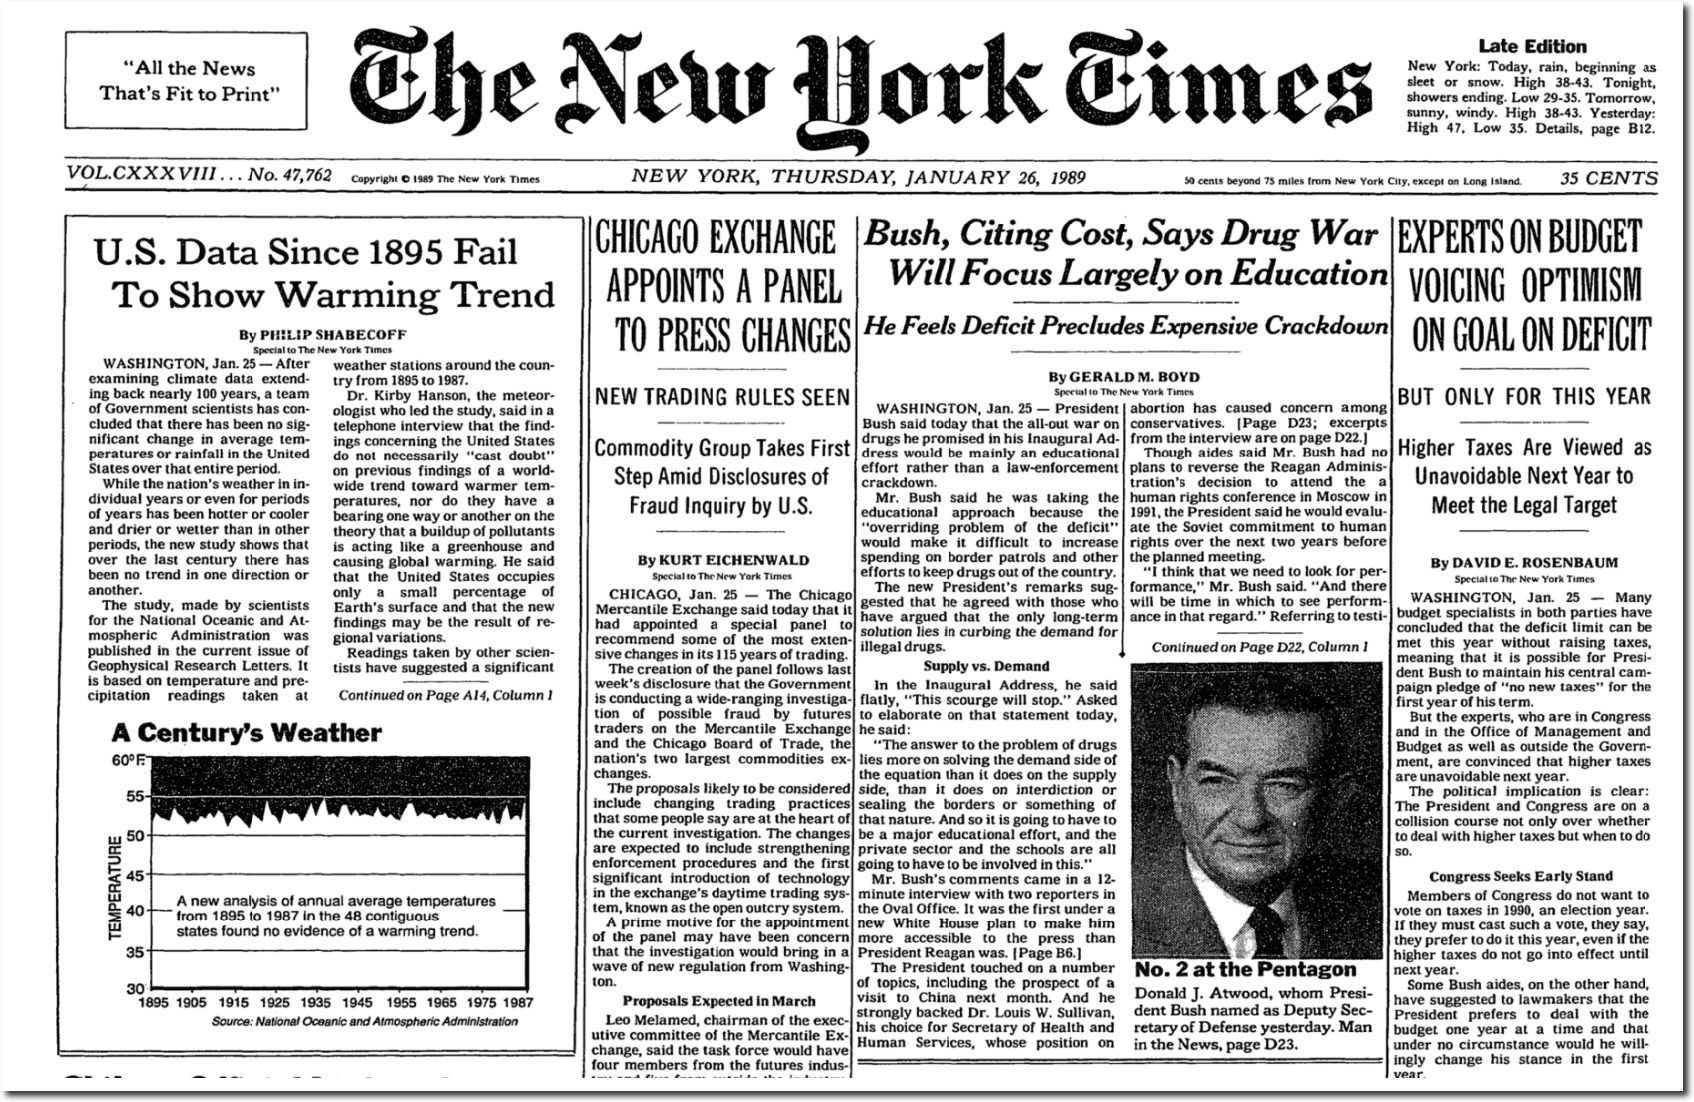 2018 NYT contradicts their own 1980s climate reporting! Analysis: 'A spectacular amount of lies packed into New York Times climate article'